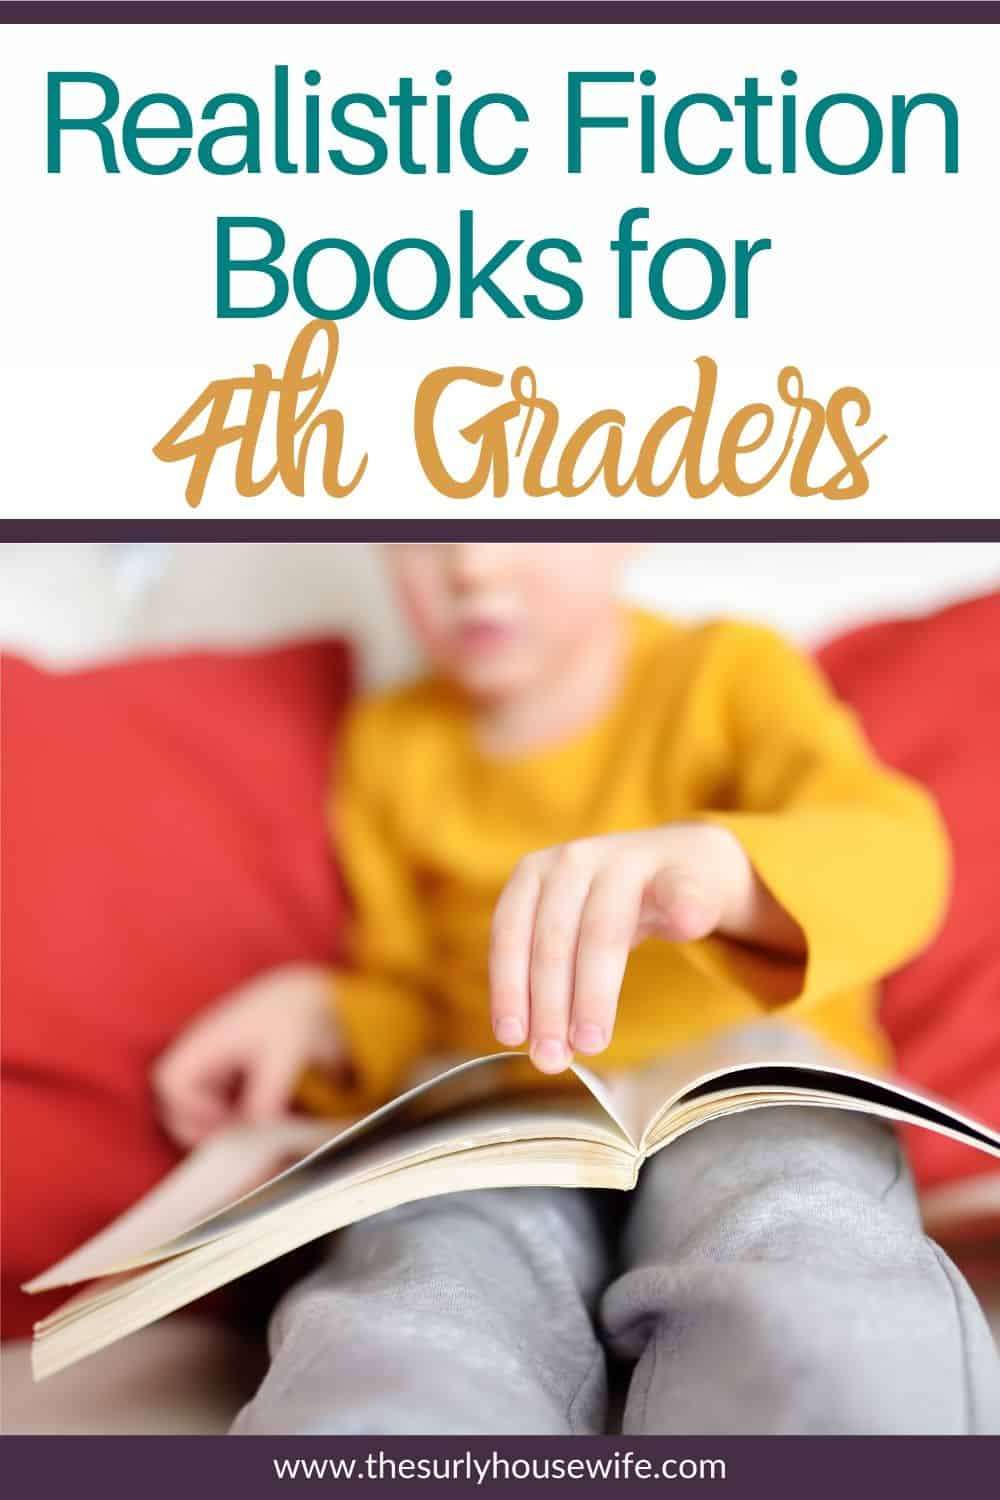 Searching for realistic fiction books for kids? Don't miss this post for some of the best books for 4th graders featuring the best realistic fiction. Perfect for 4th grade summer reading list, reading aloud, or independent reading.